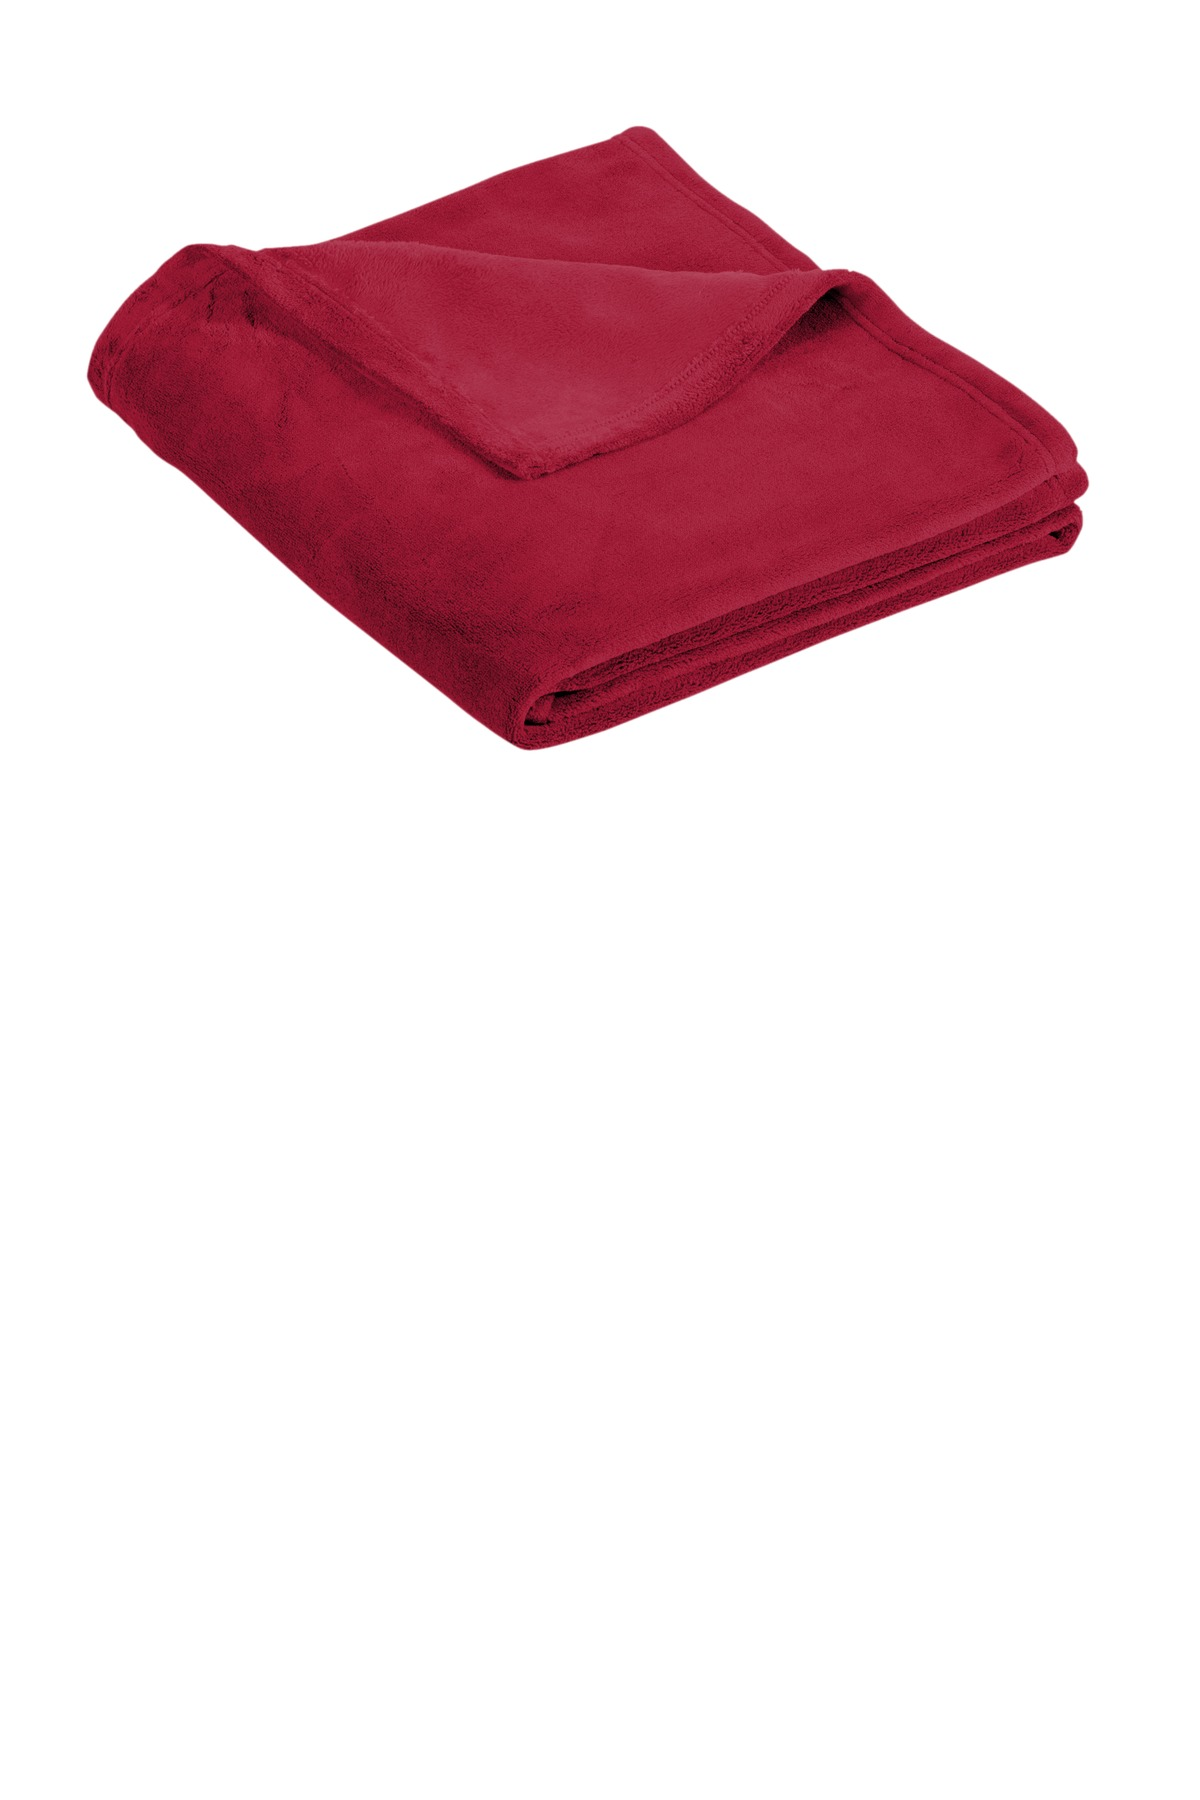 Port Authority  ®   Ultra Plush Blanket. BP31 - Rich Red